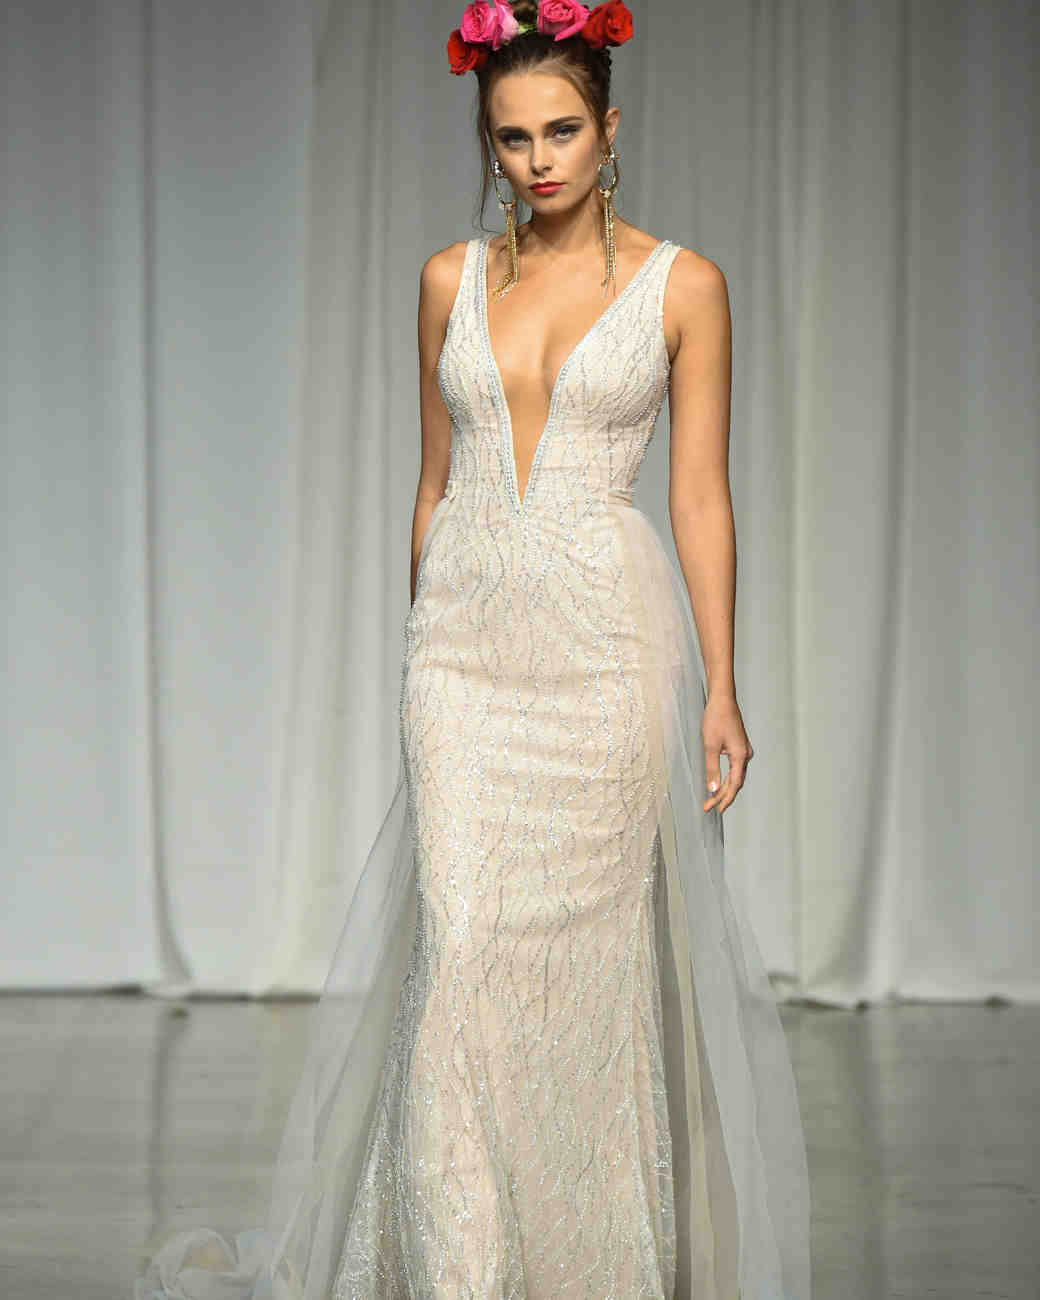 julie vino group fall 2019 sheath v-neck glitter wedding dress